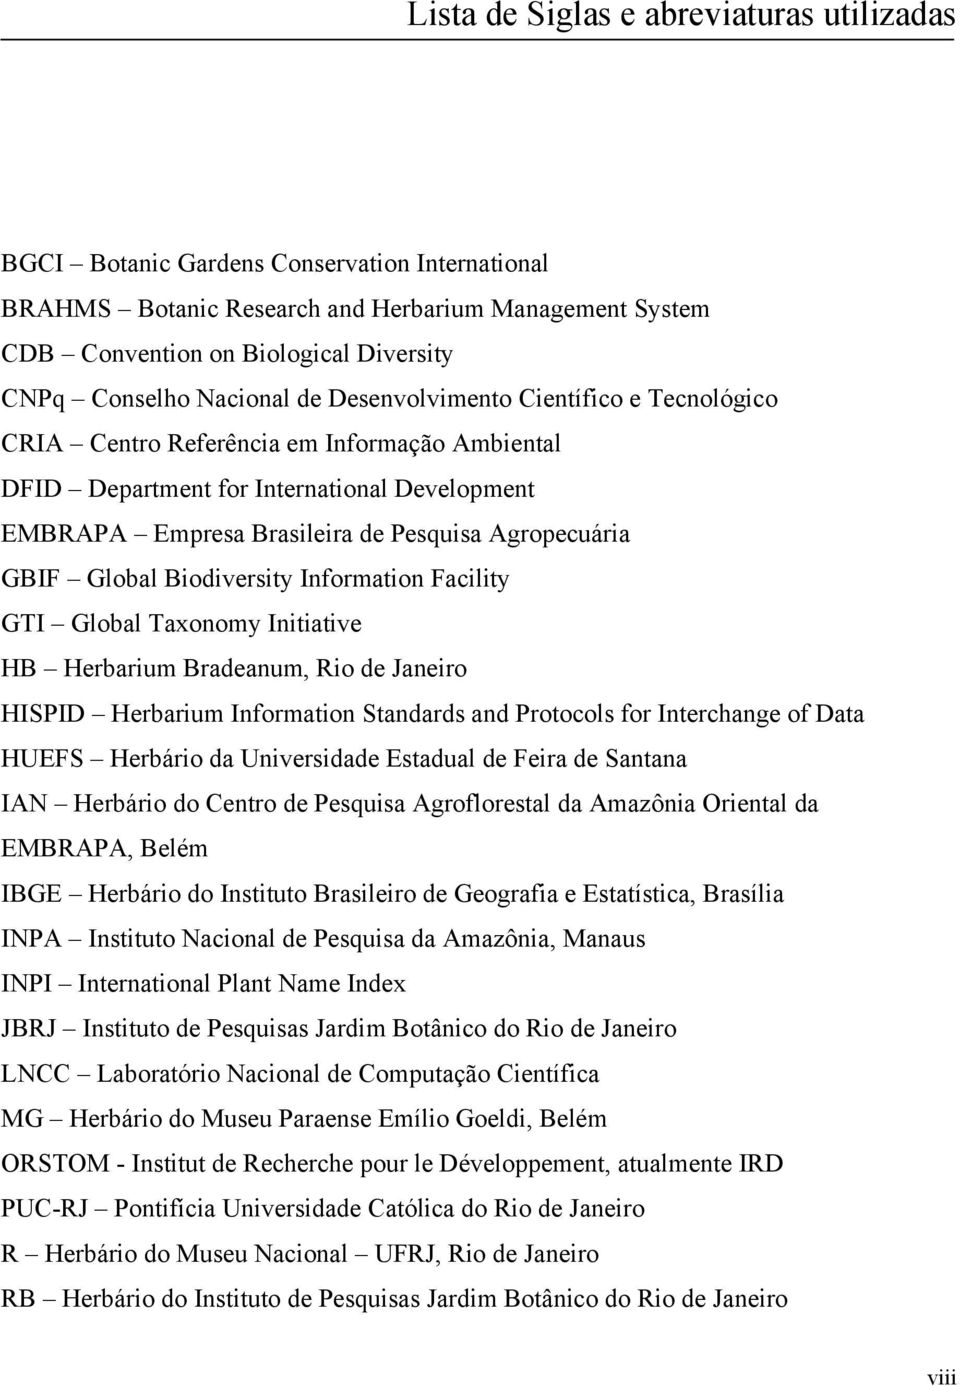 GBIF Global Biodiversity Information Facility GTI Global Taxonomy Initiative HB Herbarium Bradeanum, Rio de Janeiro HISPID Herbarium Information Standards and Protocols for Interchange of Data HUEFS